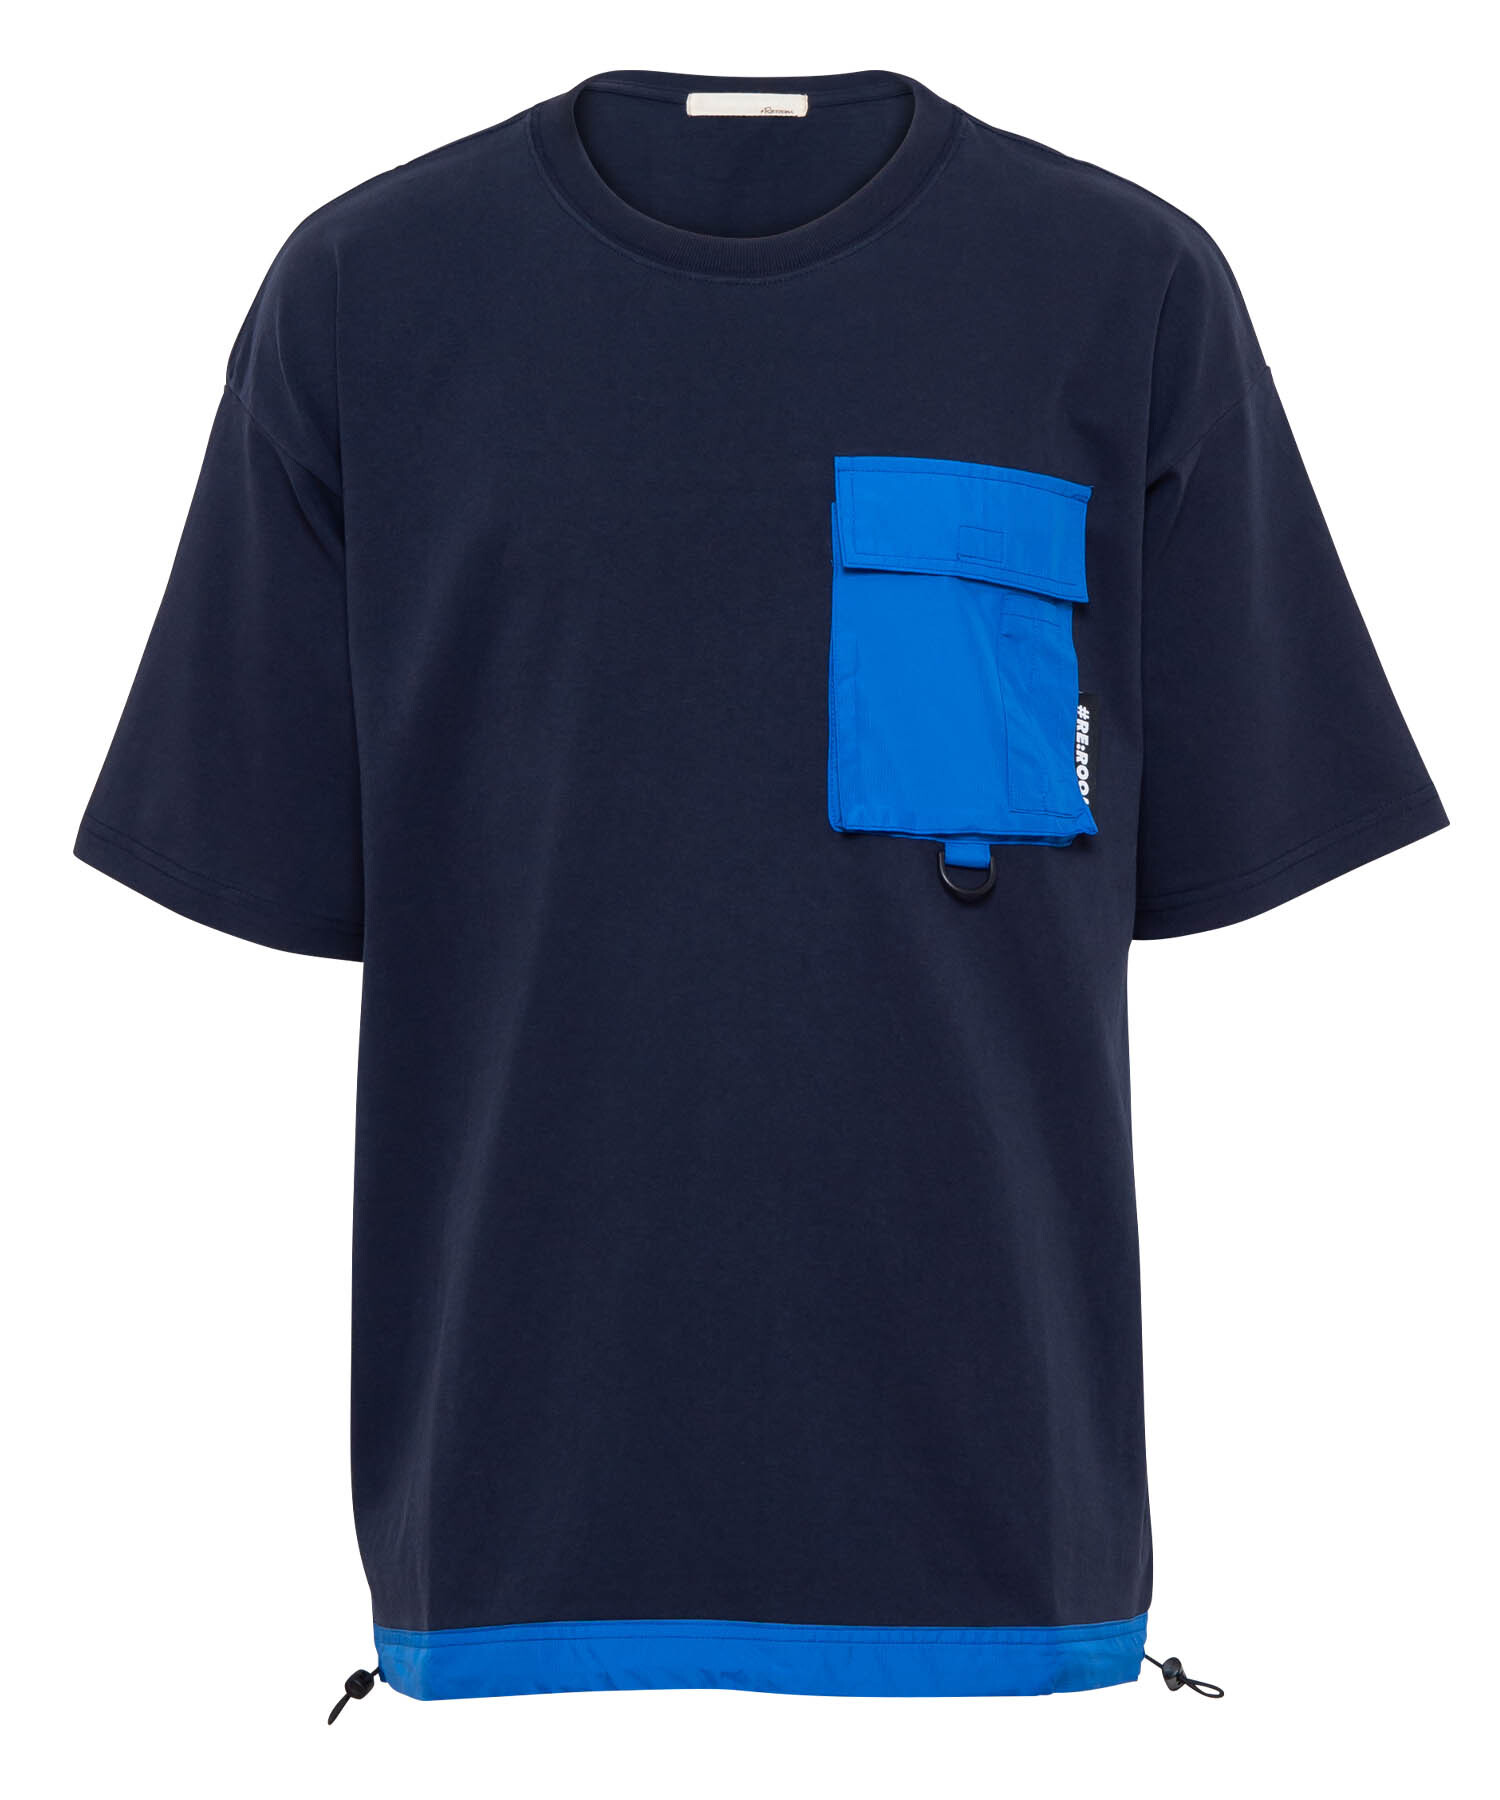 NYLON POCKET BIG T-shirt[REC379]